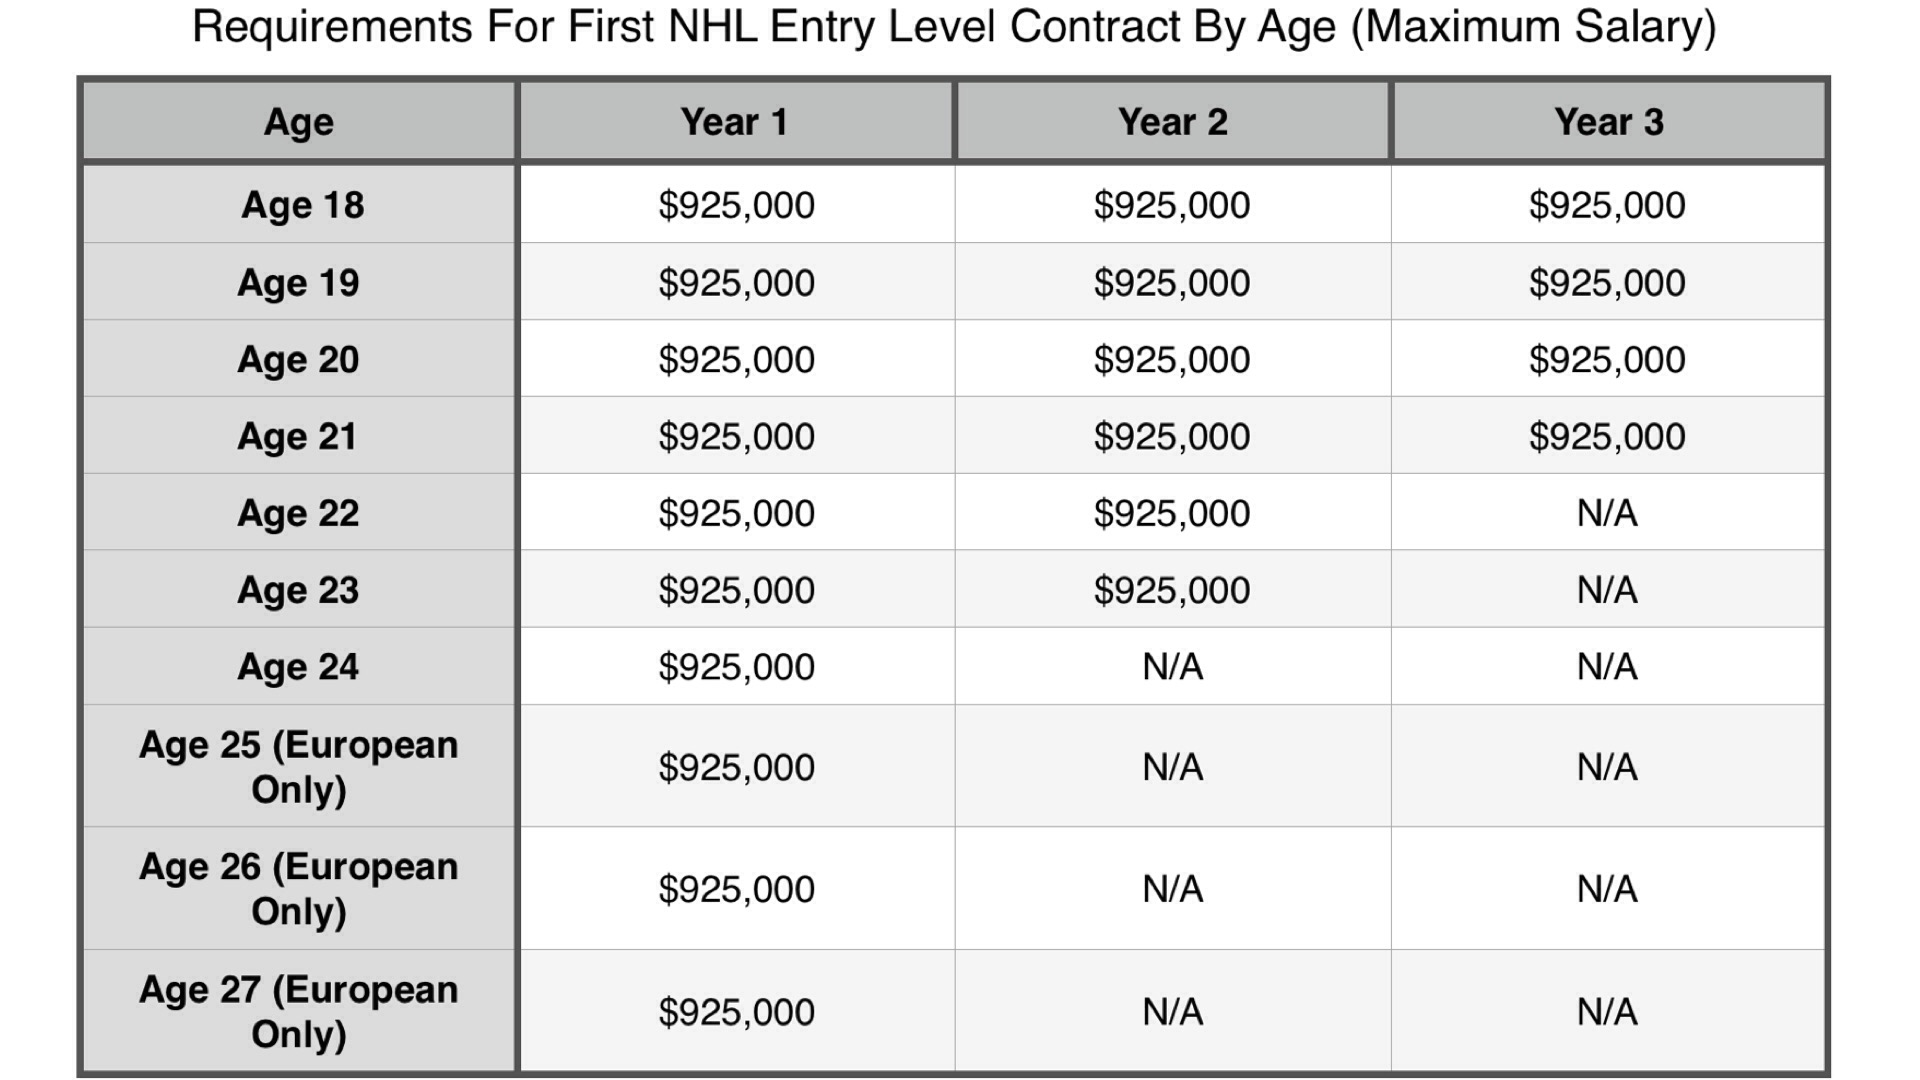 Contract Requirements | Nhl Entry Level Contract Requirements By Age Blackhawks Breakdown